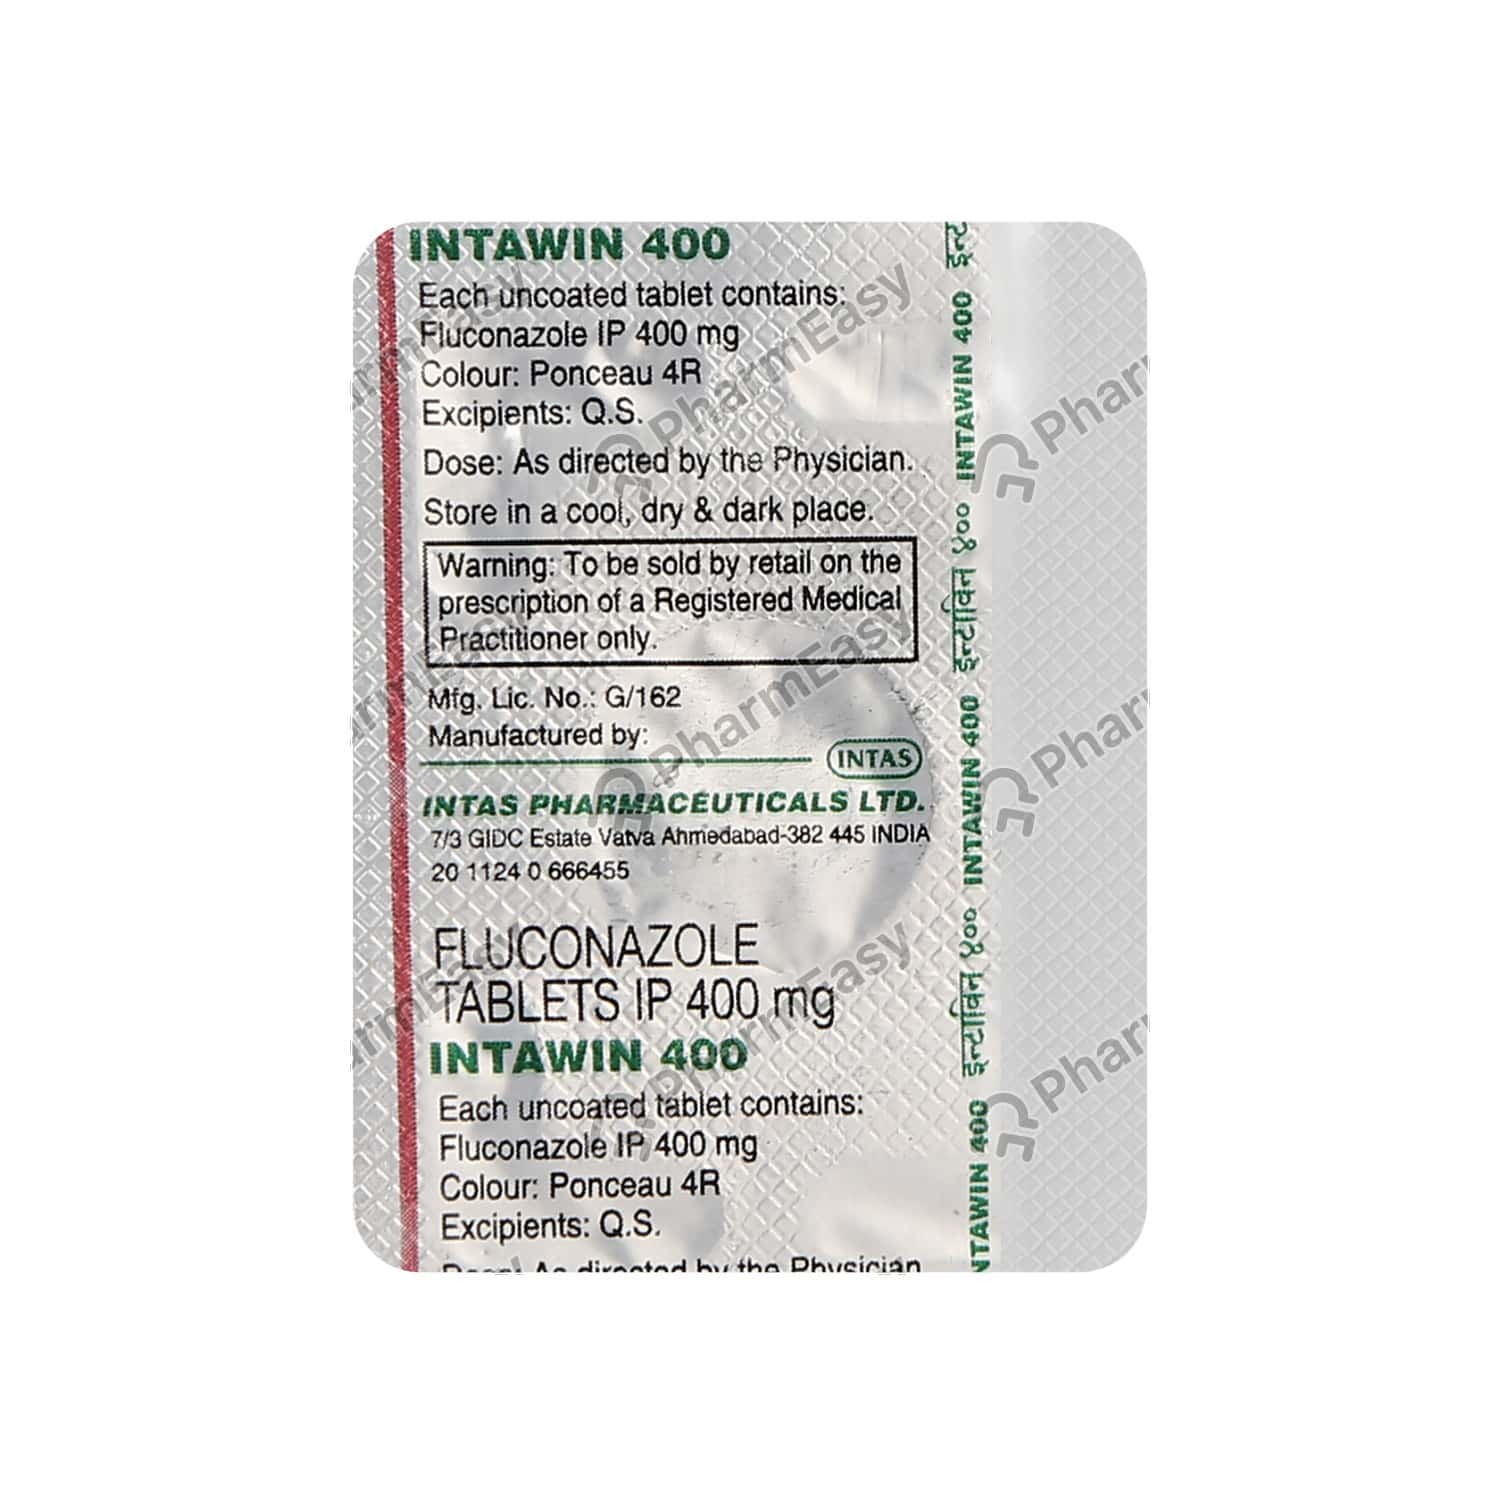 Intawin 400mg Strip Of 1 Tablets